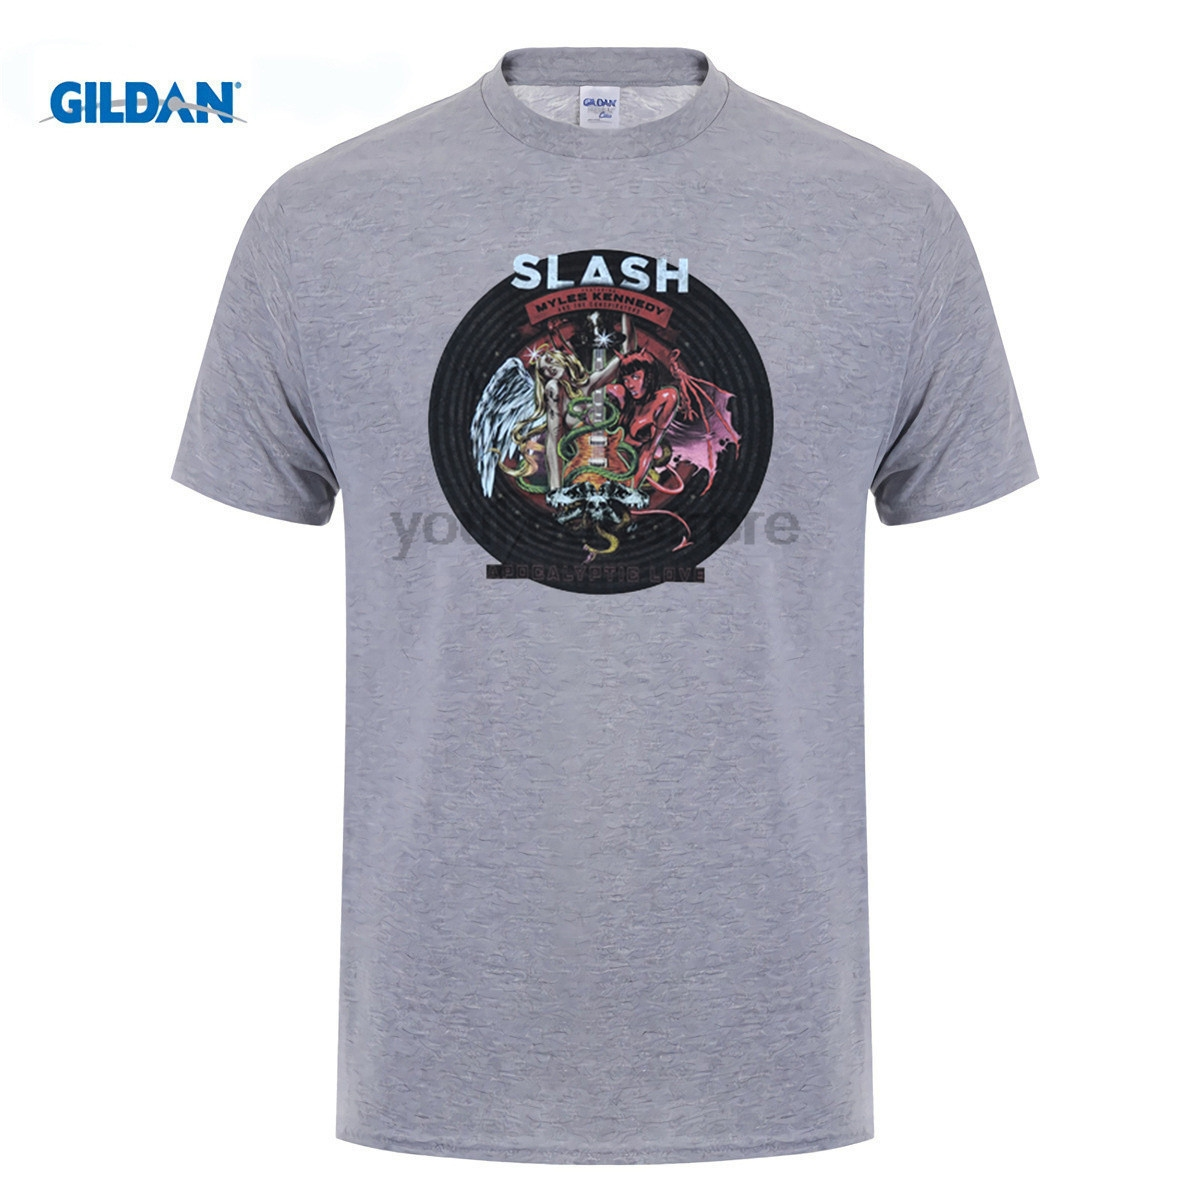 GILDAN Guns N Roses Slash T Shirt Rock Band Tee Men Women T-Shirt Guns and Roses GNR Tshirt Rock Theme Clothing